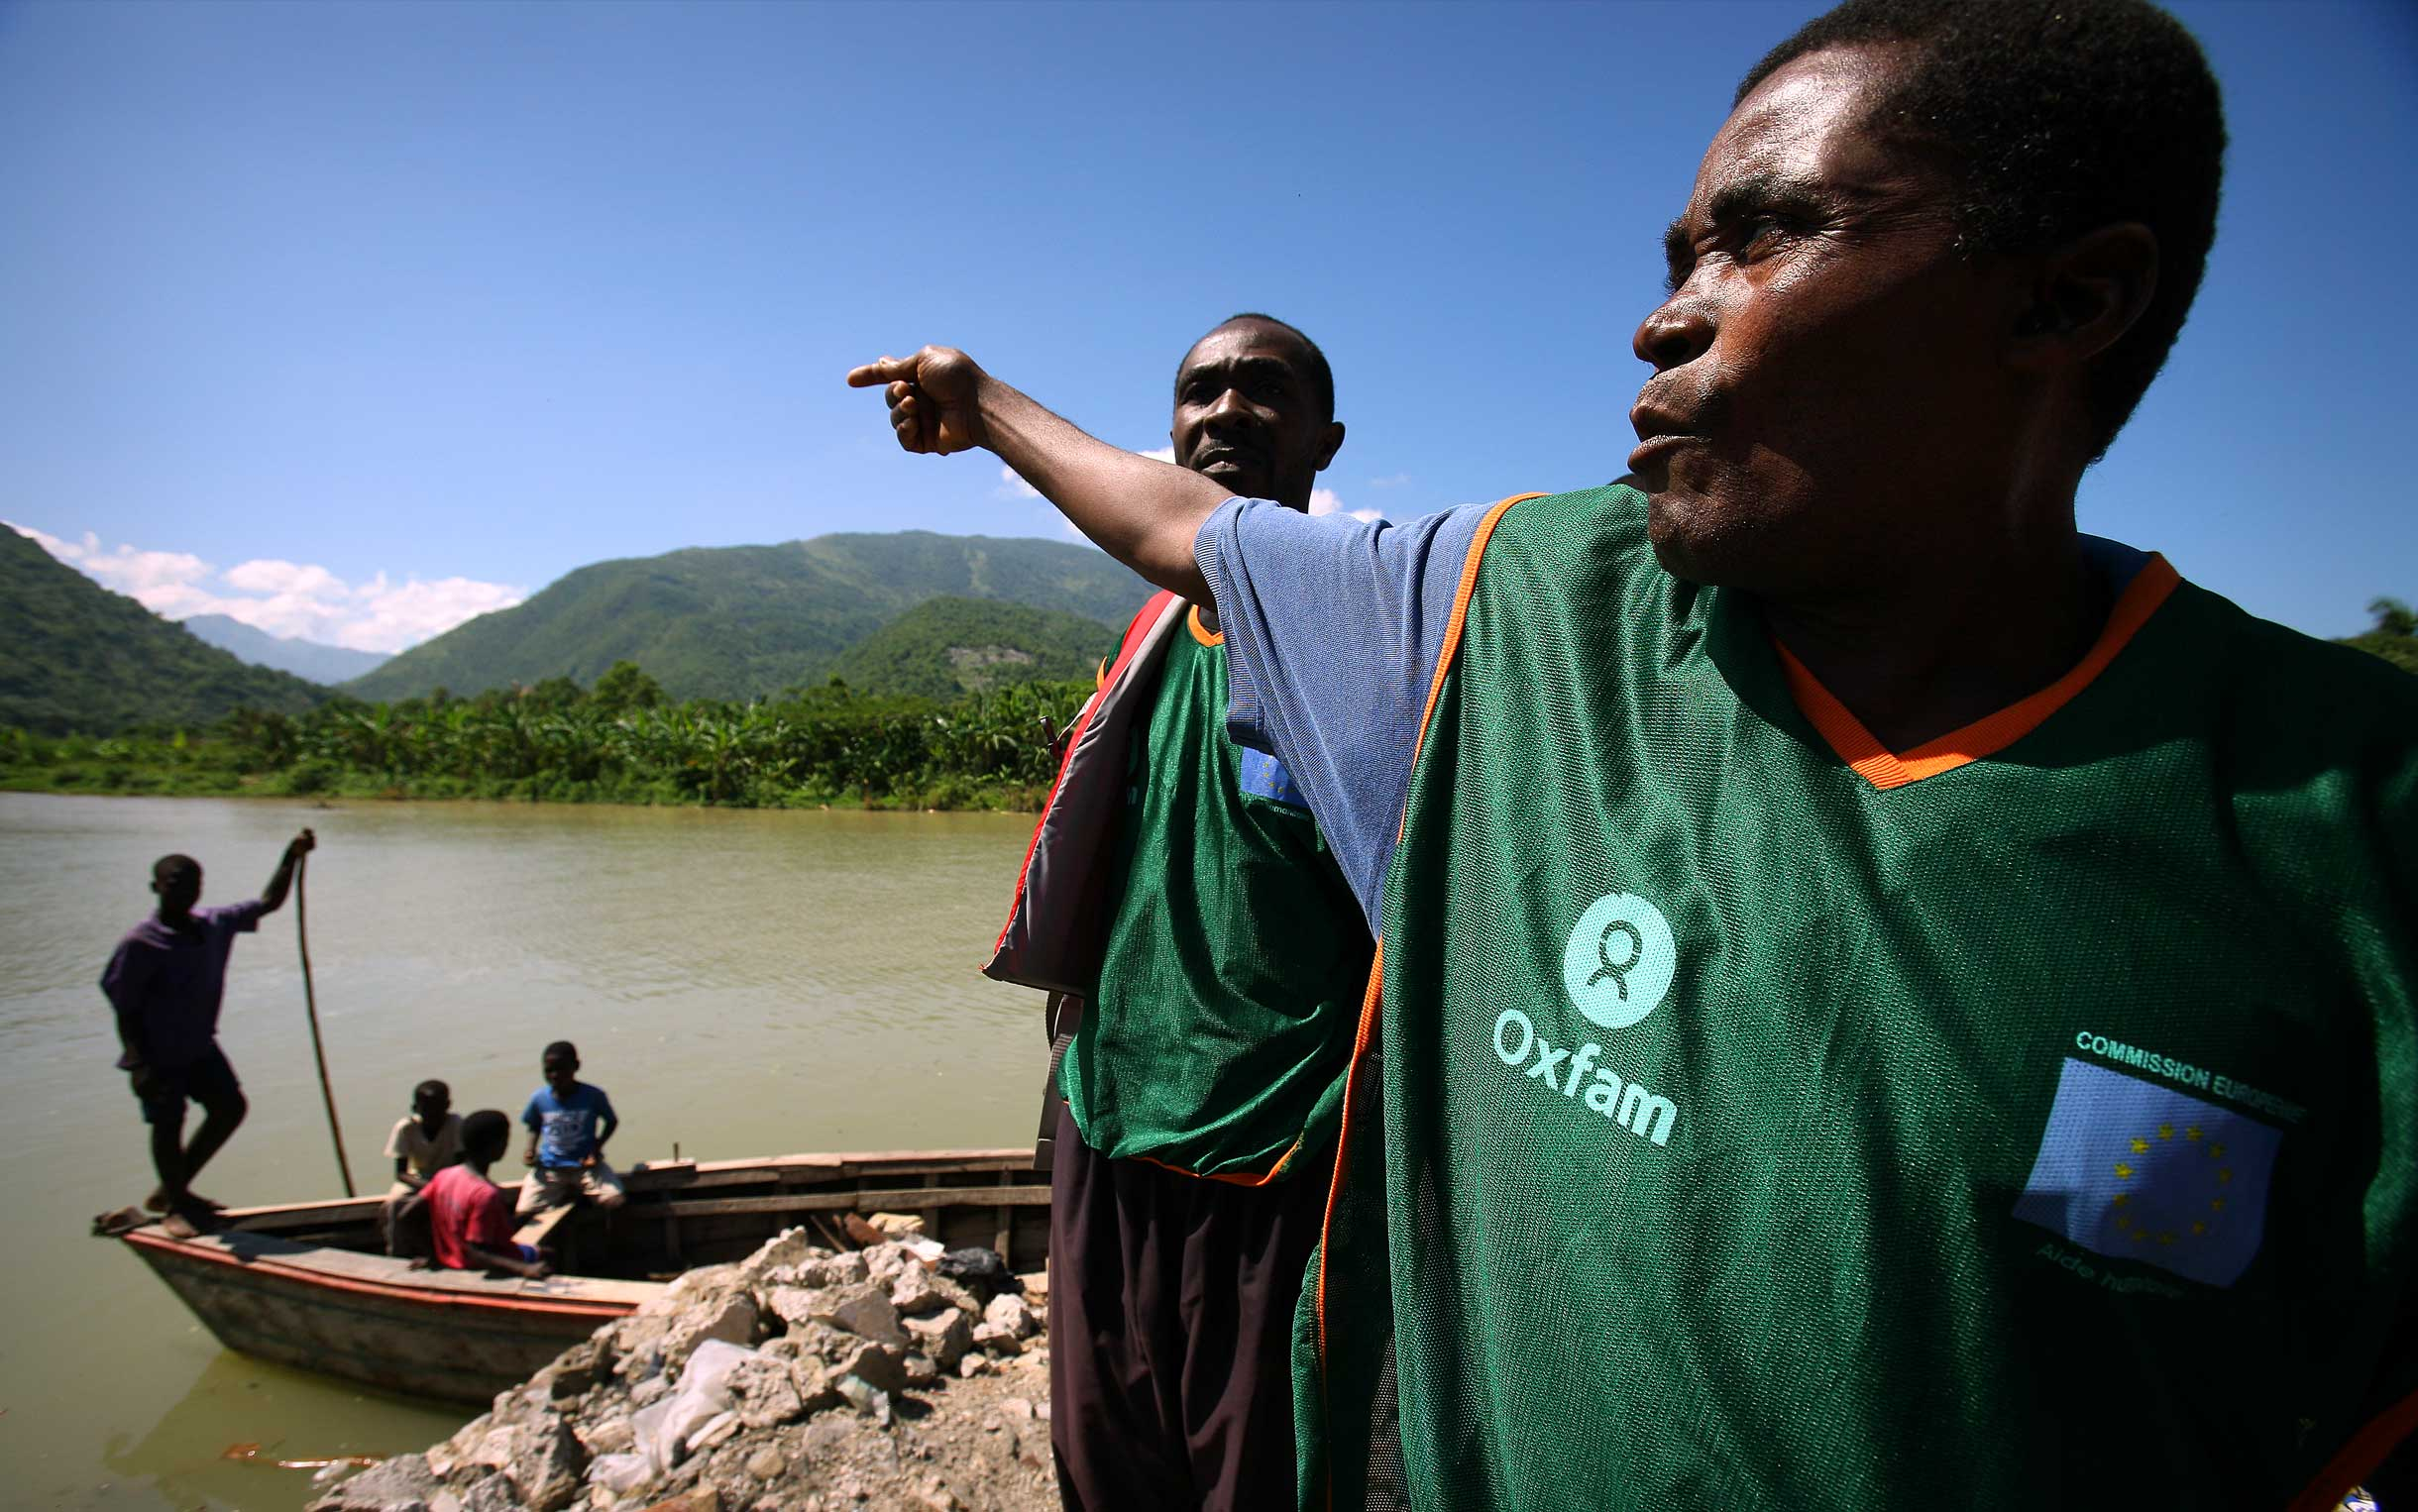 Disaster response training in Haiti. Photo: Abbie Trayler-Smith/Oxfam